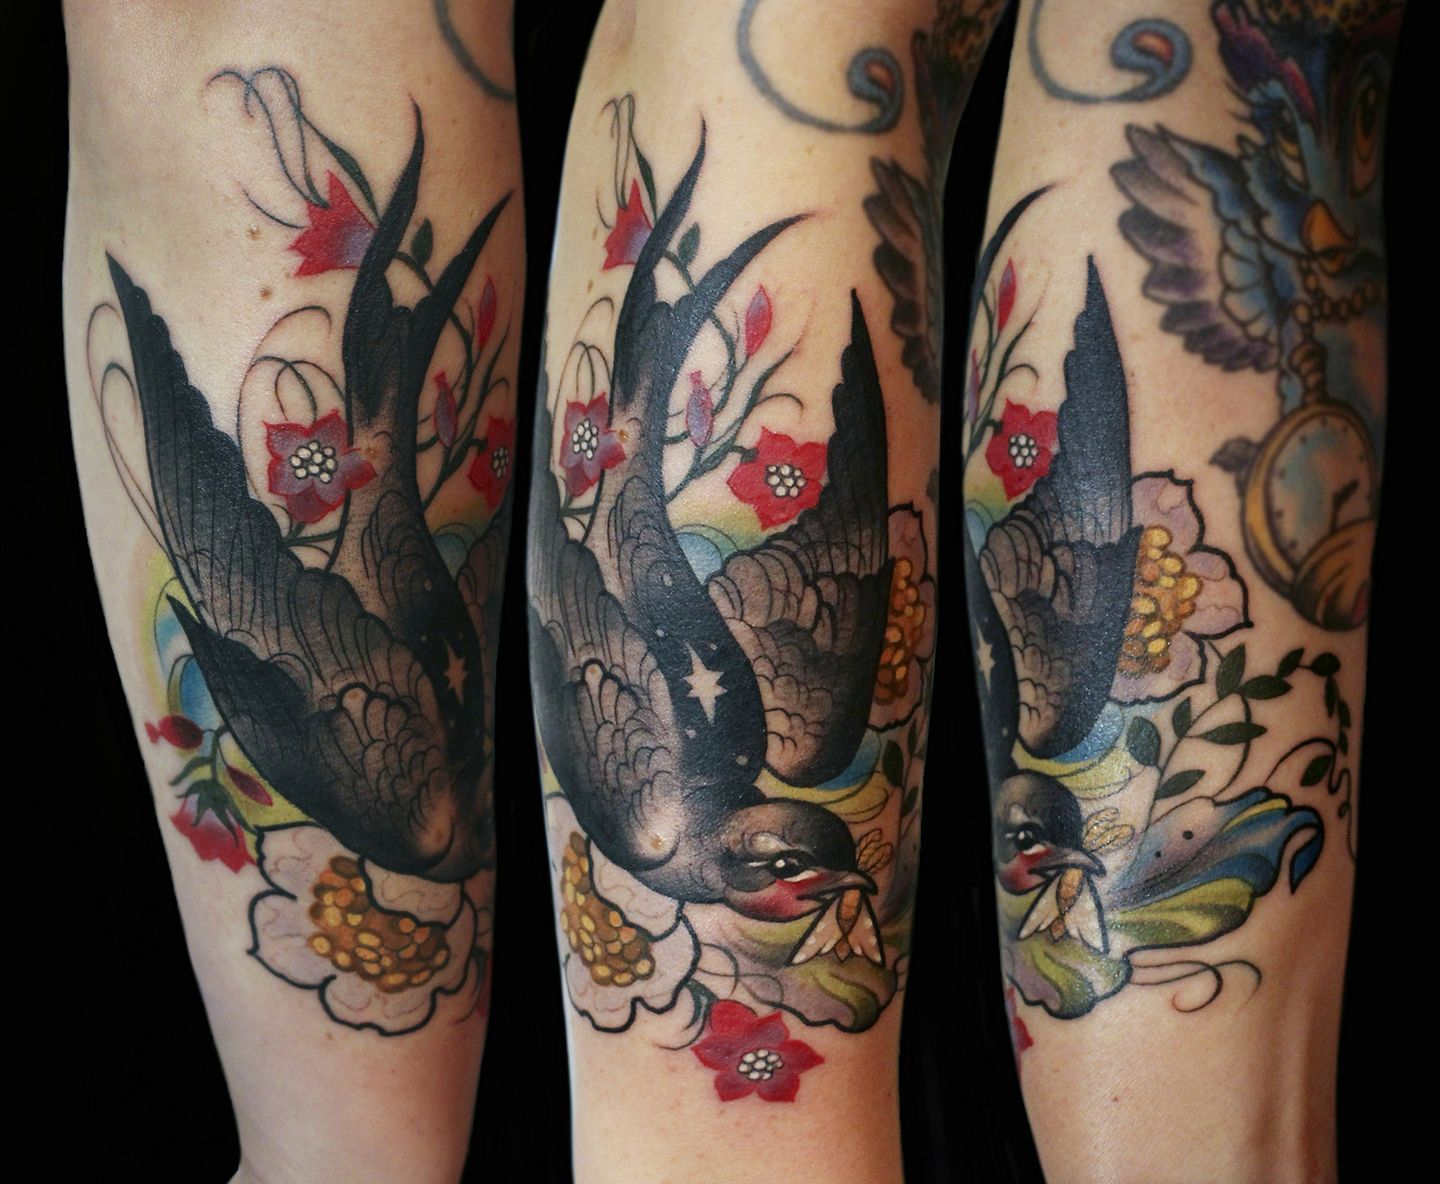 10+ Awesome Tattoo and piercing near me walk ins image HD